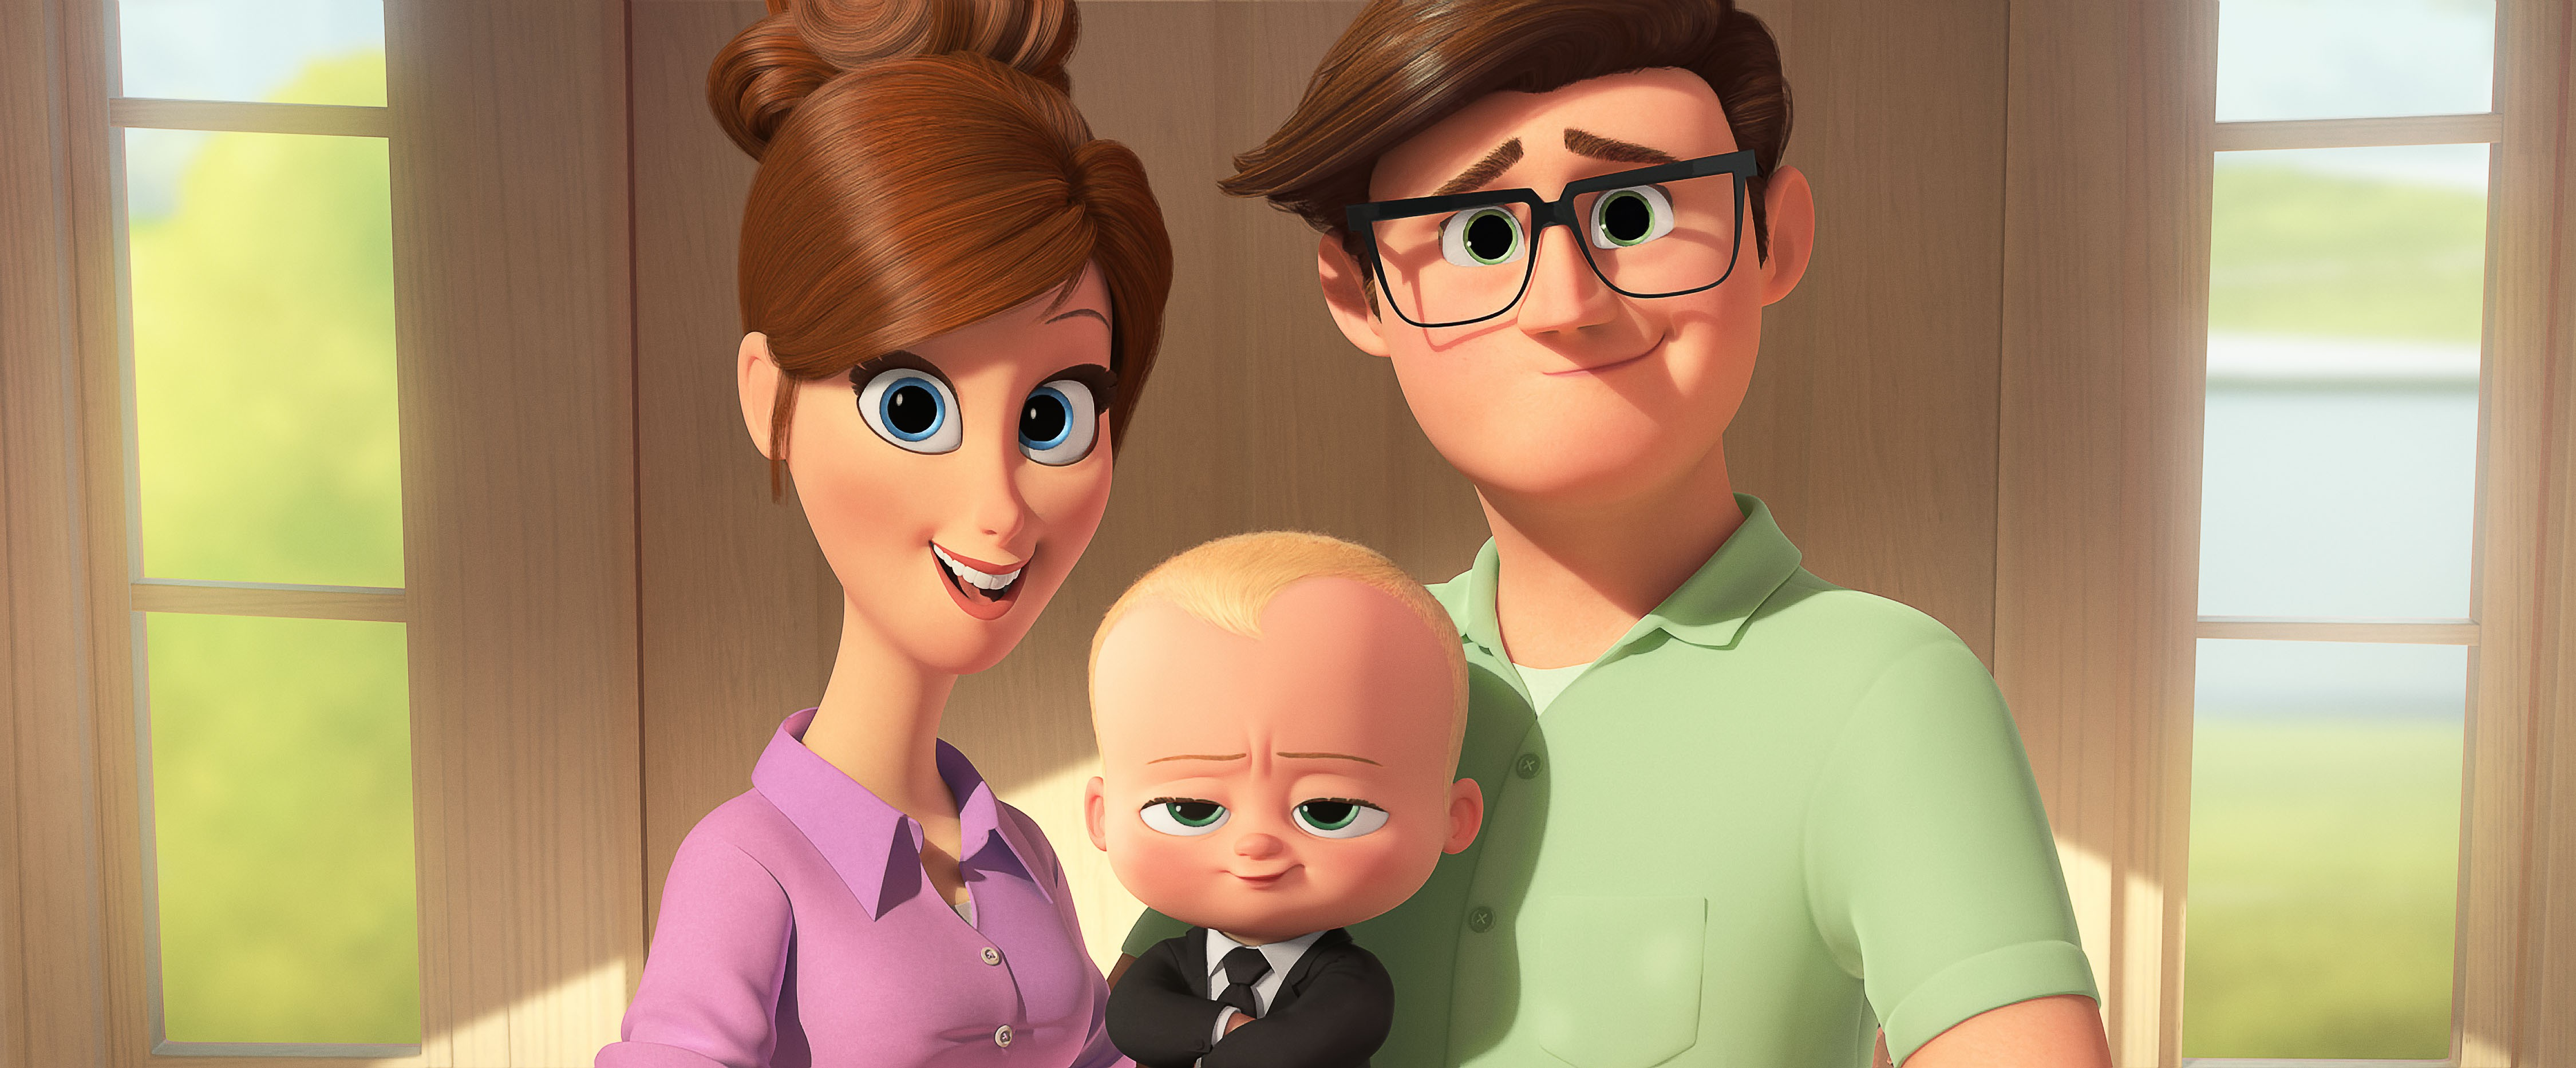 wallpaper the boss baby, baby, family, best animation movies, movies